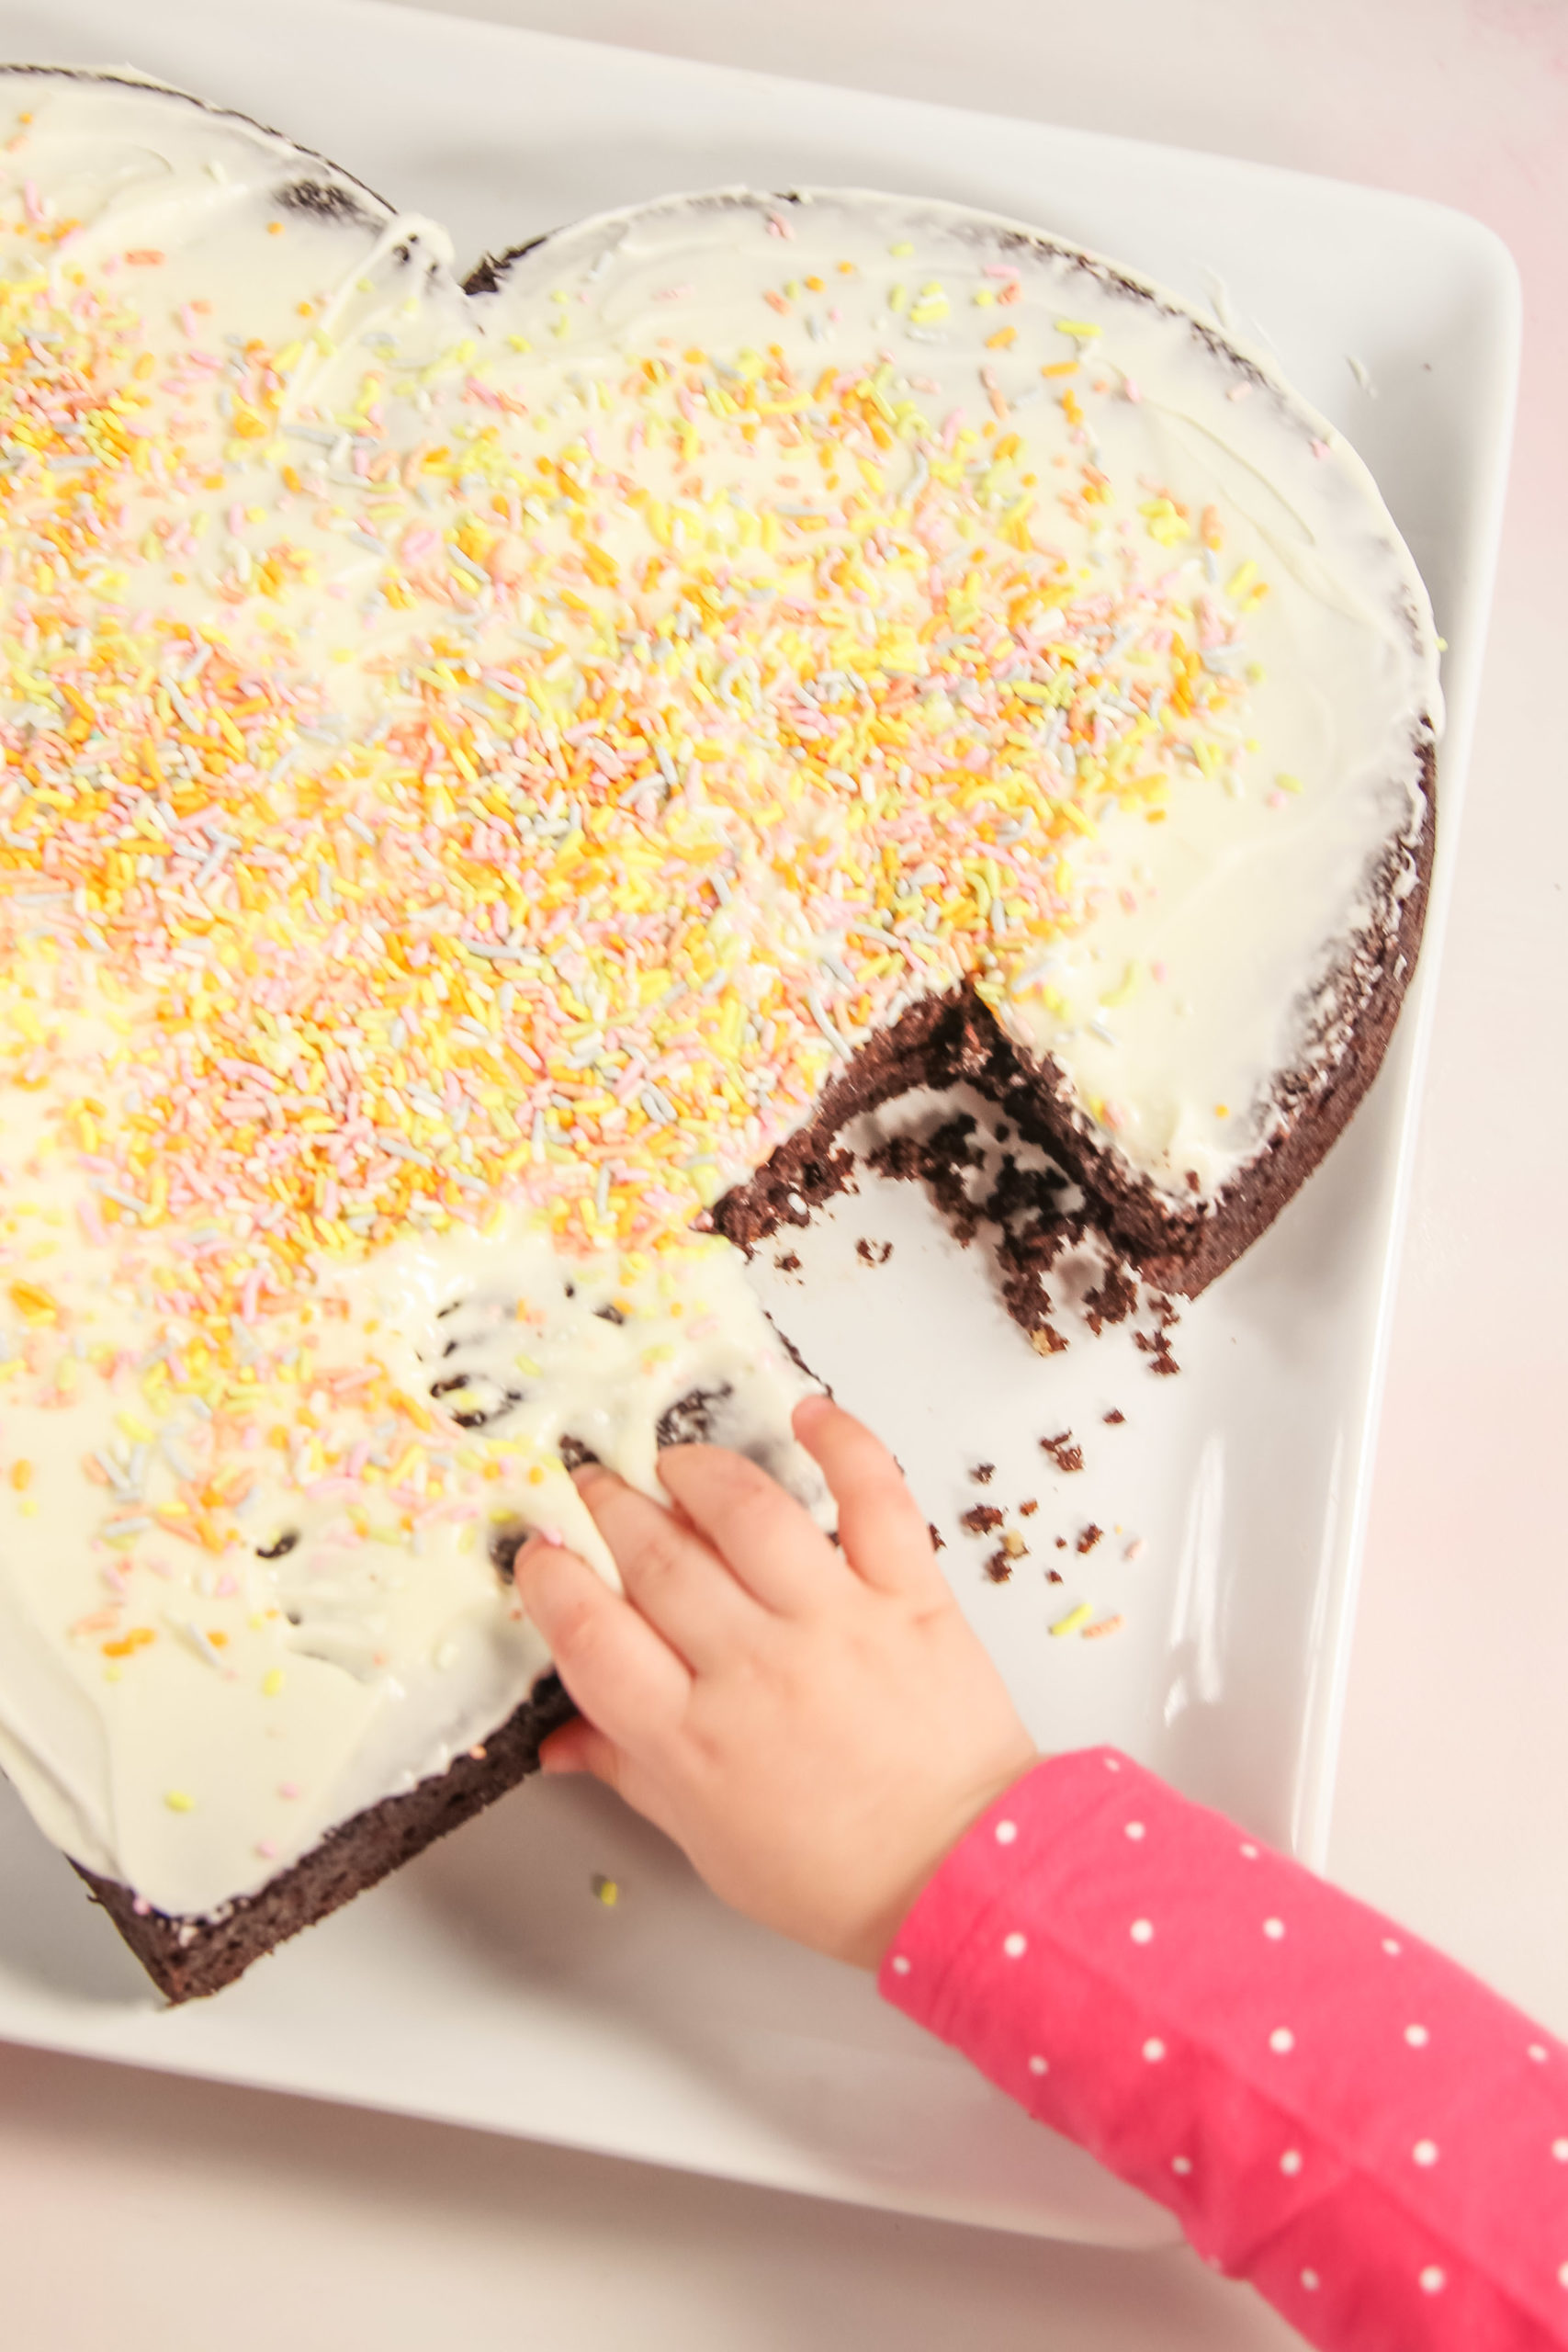 Kid grabbing a piece of heart shaped cake